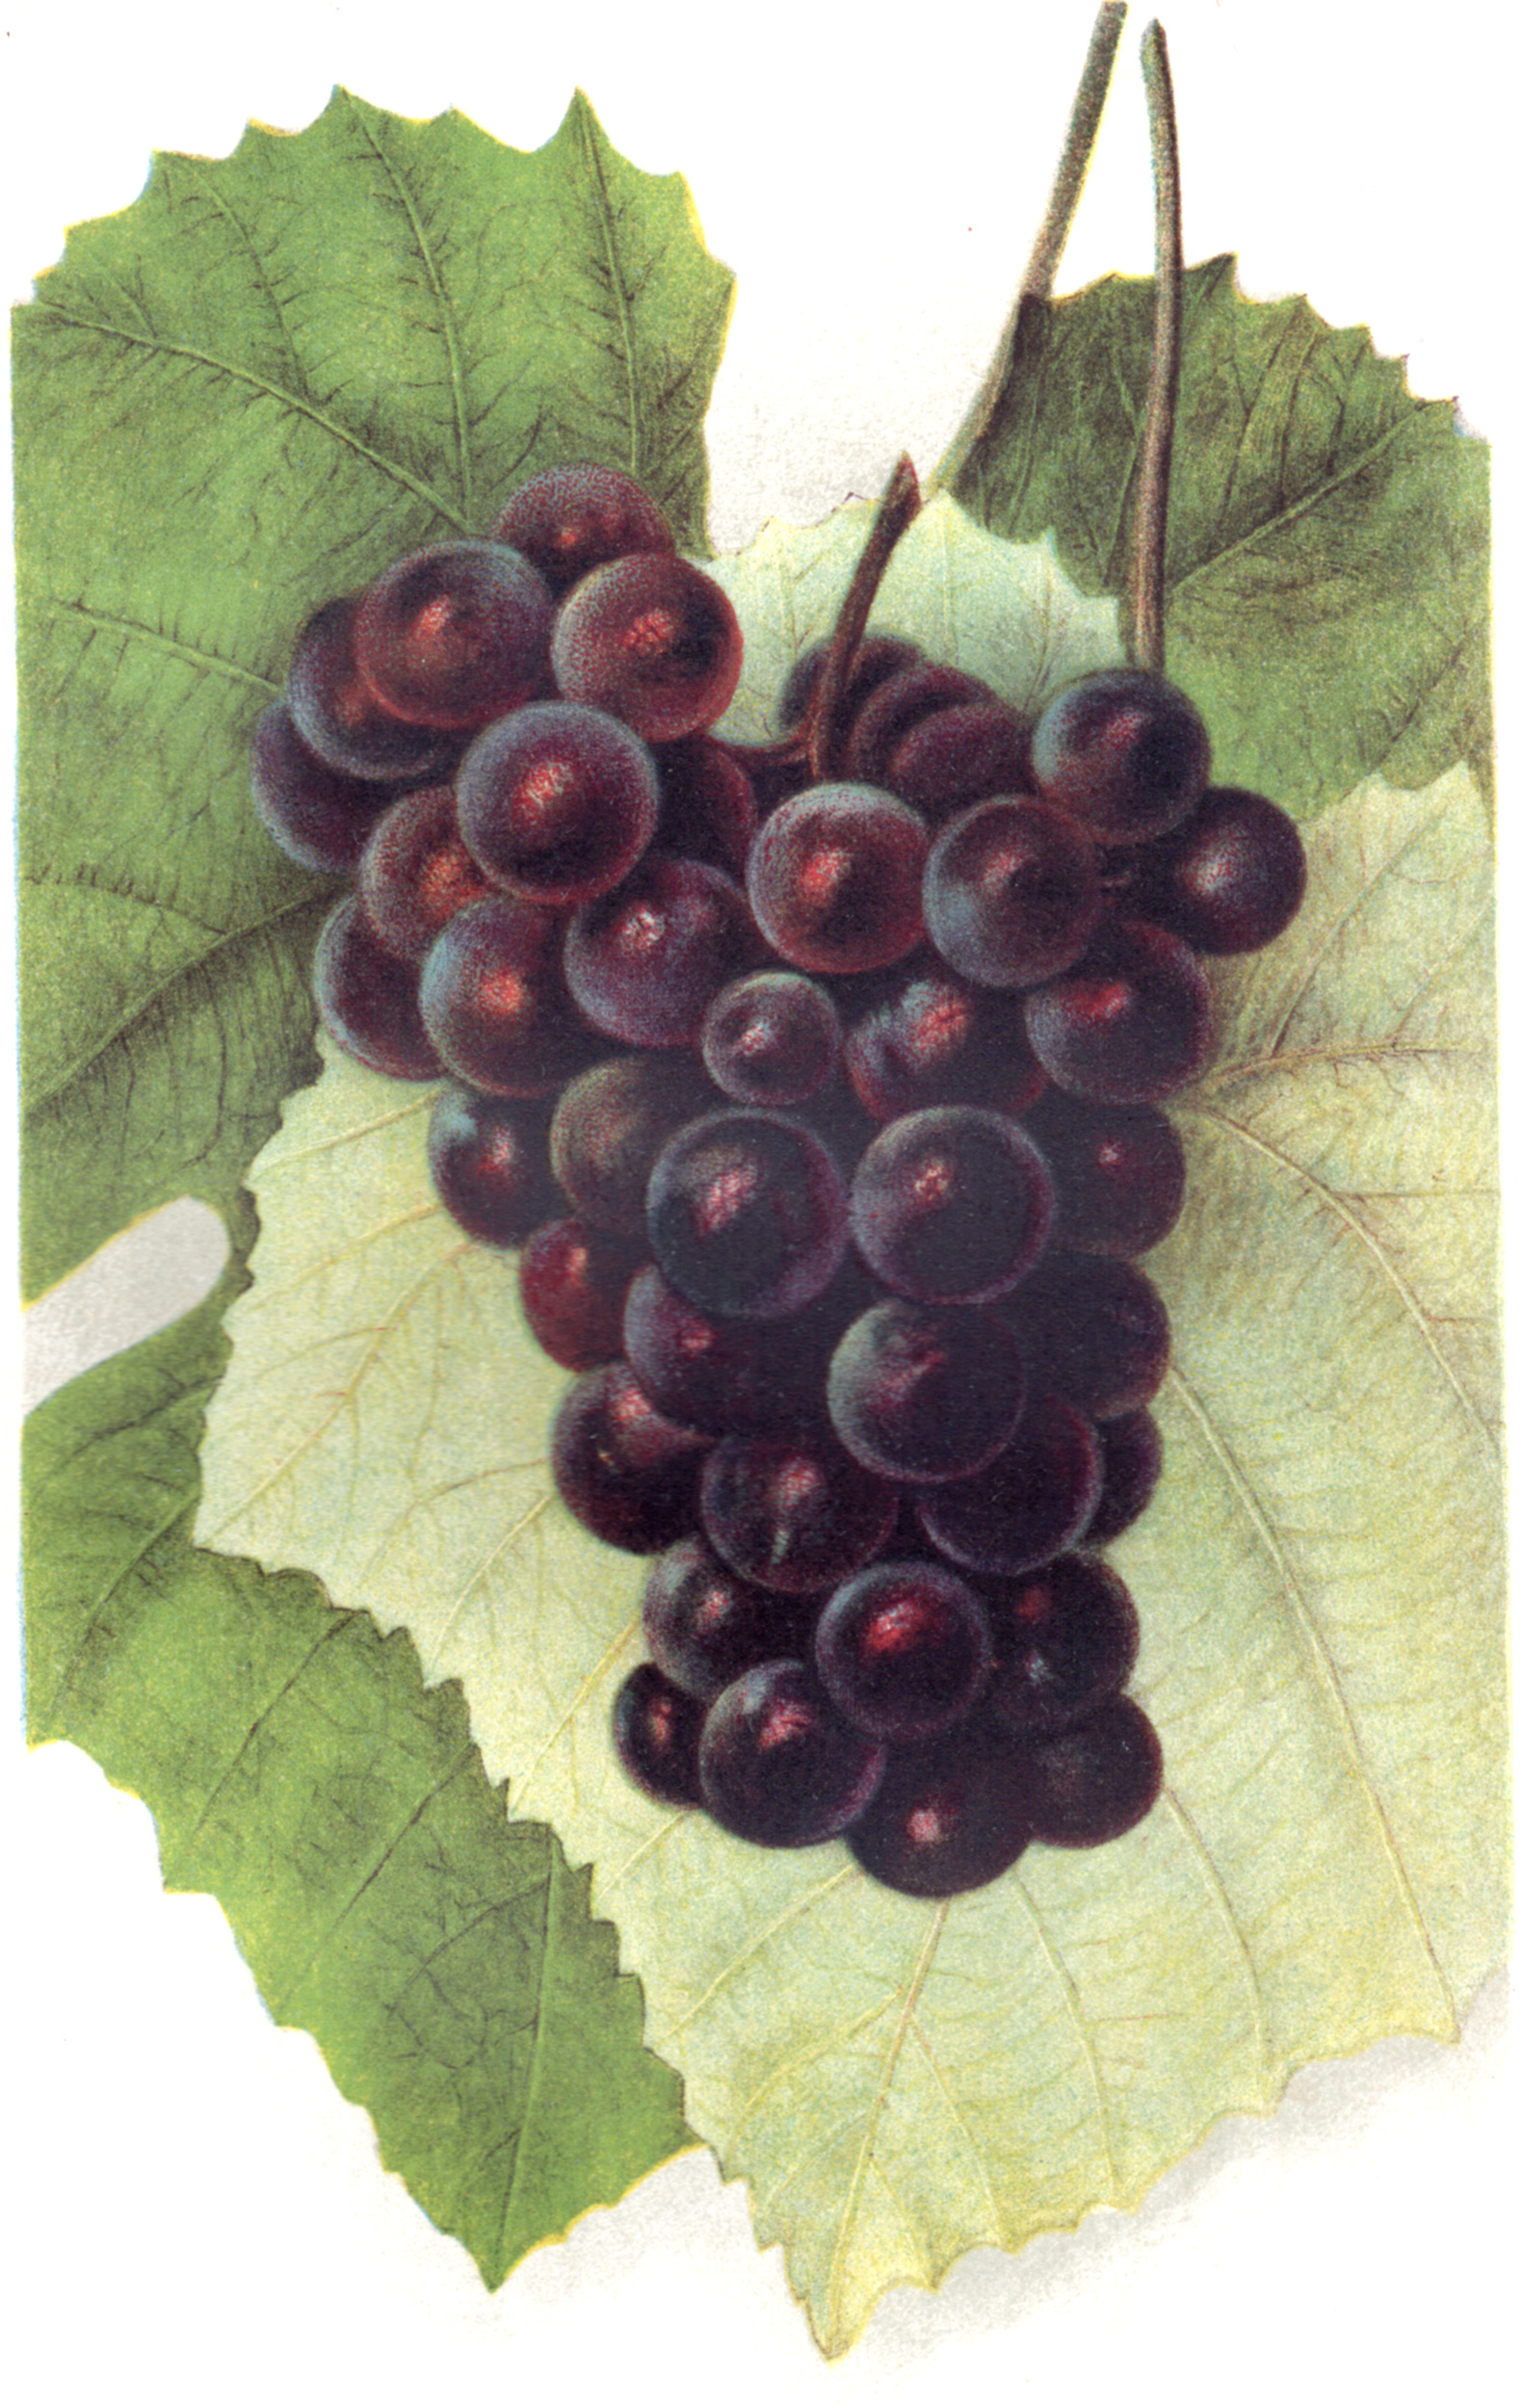 U.S. Dept. of Ag. – 1903 Fruit